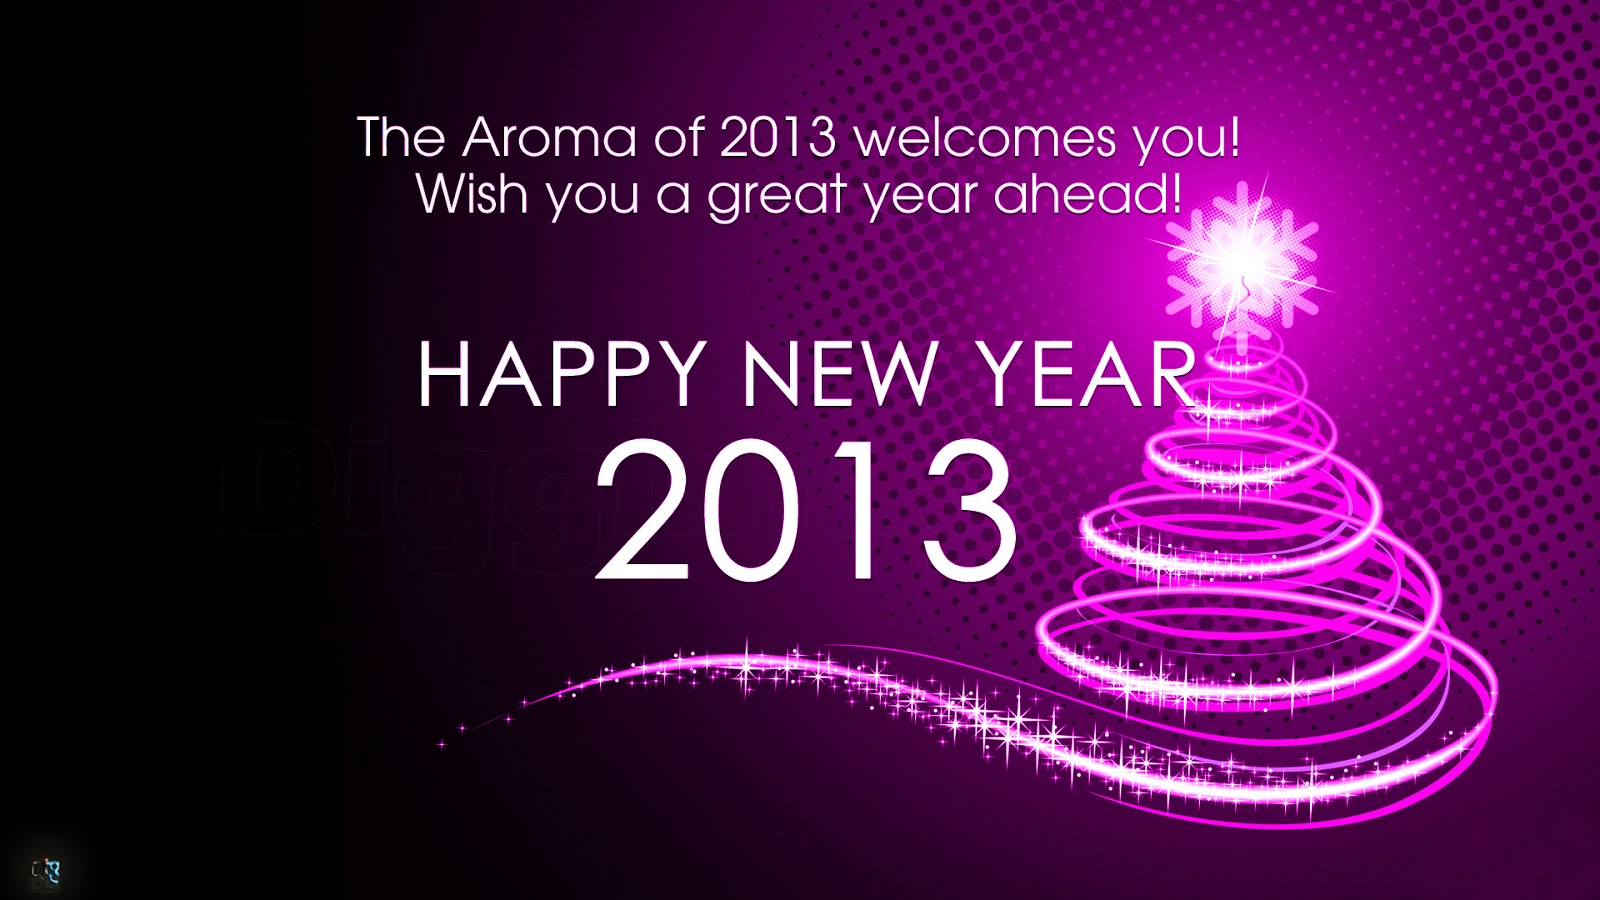 Happy New Year 2013 Tamil Wishes Sms Greetings And Wallpapers. 1600 x 900.Send Free New Years Greeting Cards